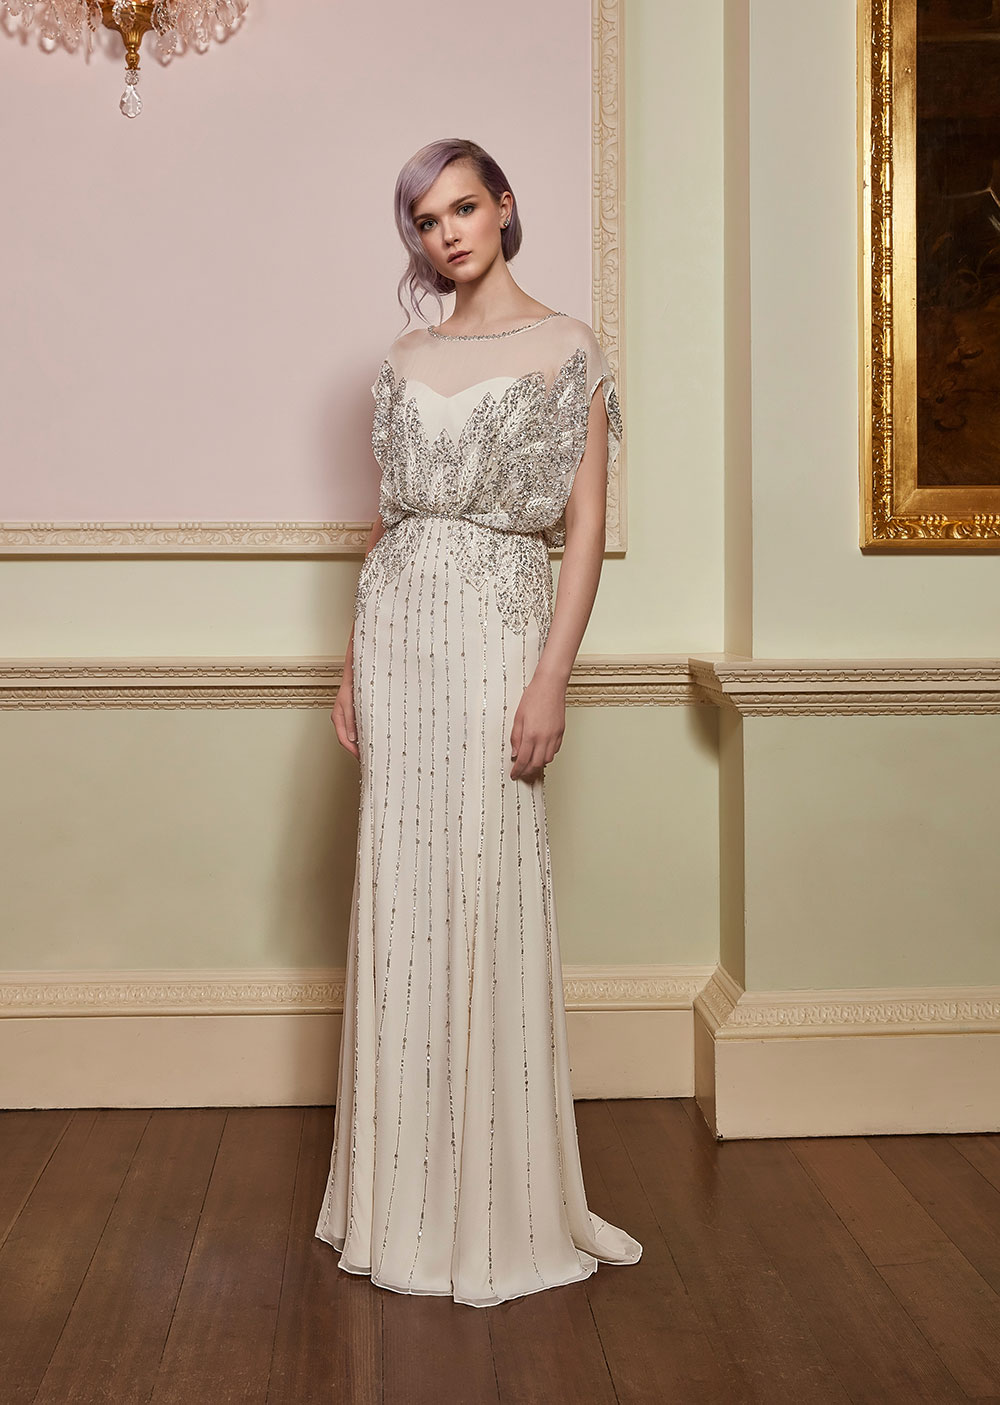 Spirit - Jenny Packham 2018 Bridal Collection. www.theweddingnotebook.com